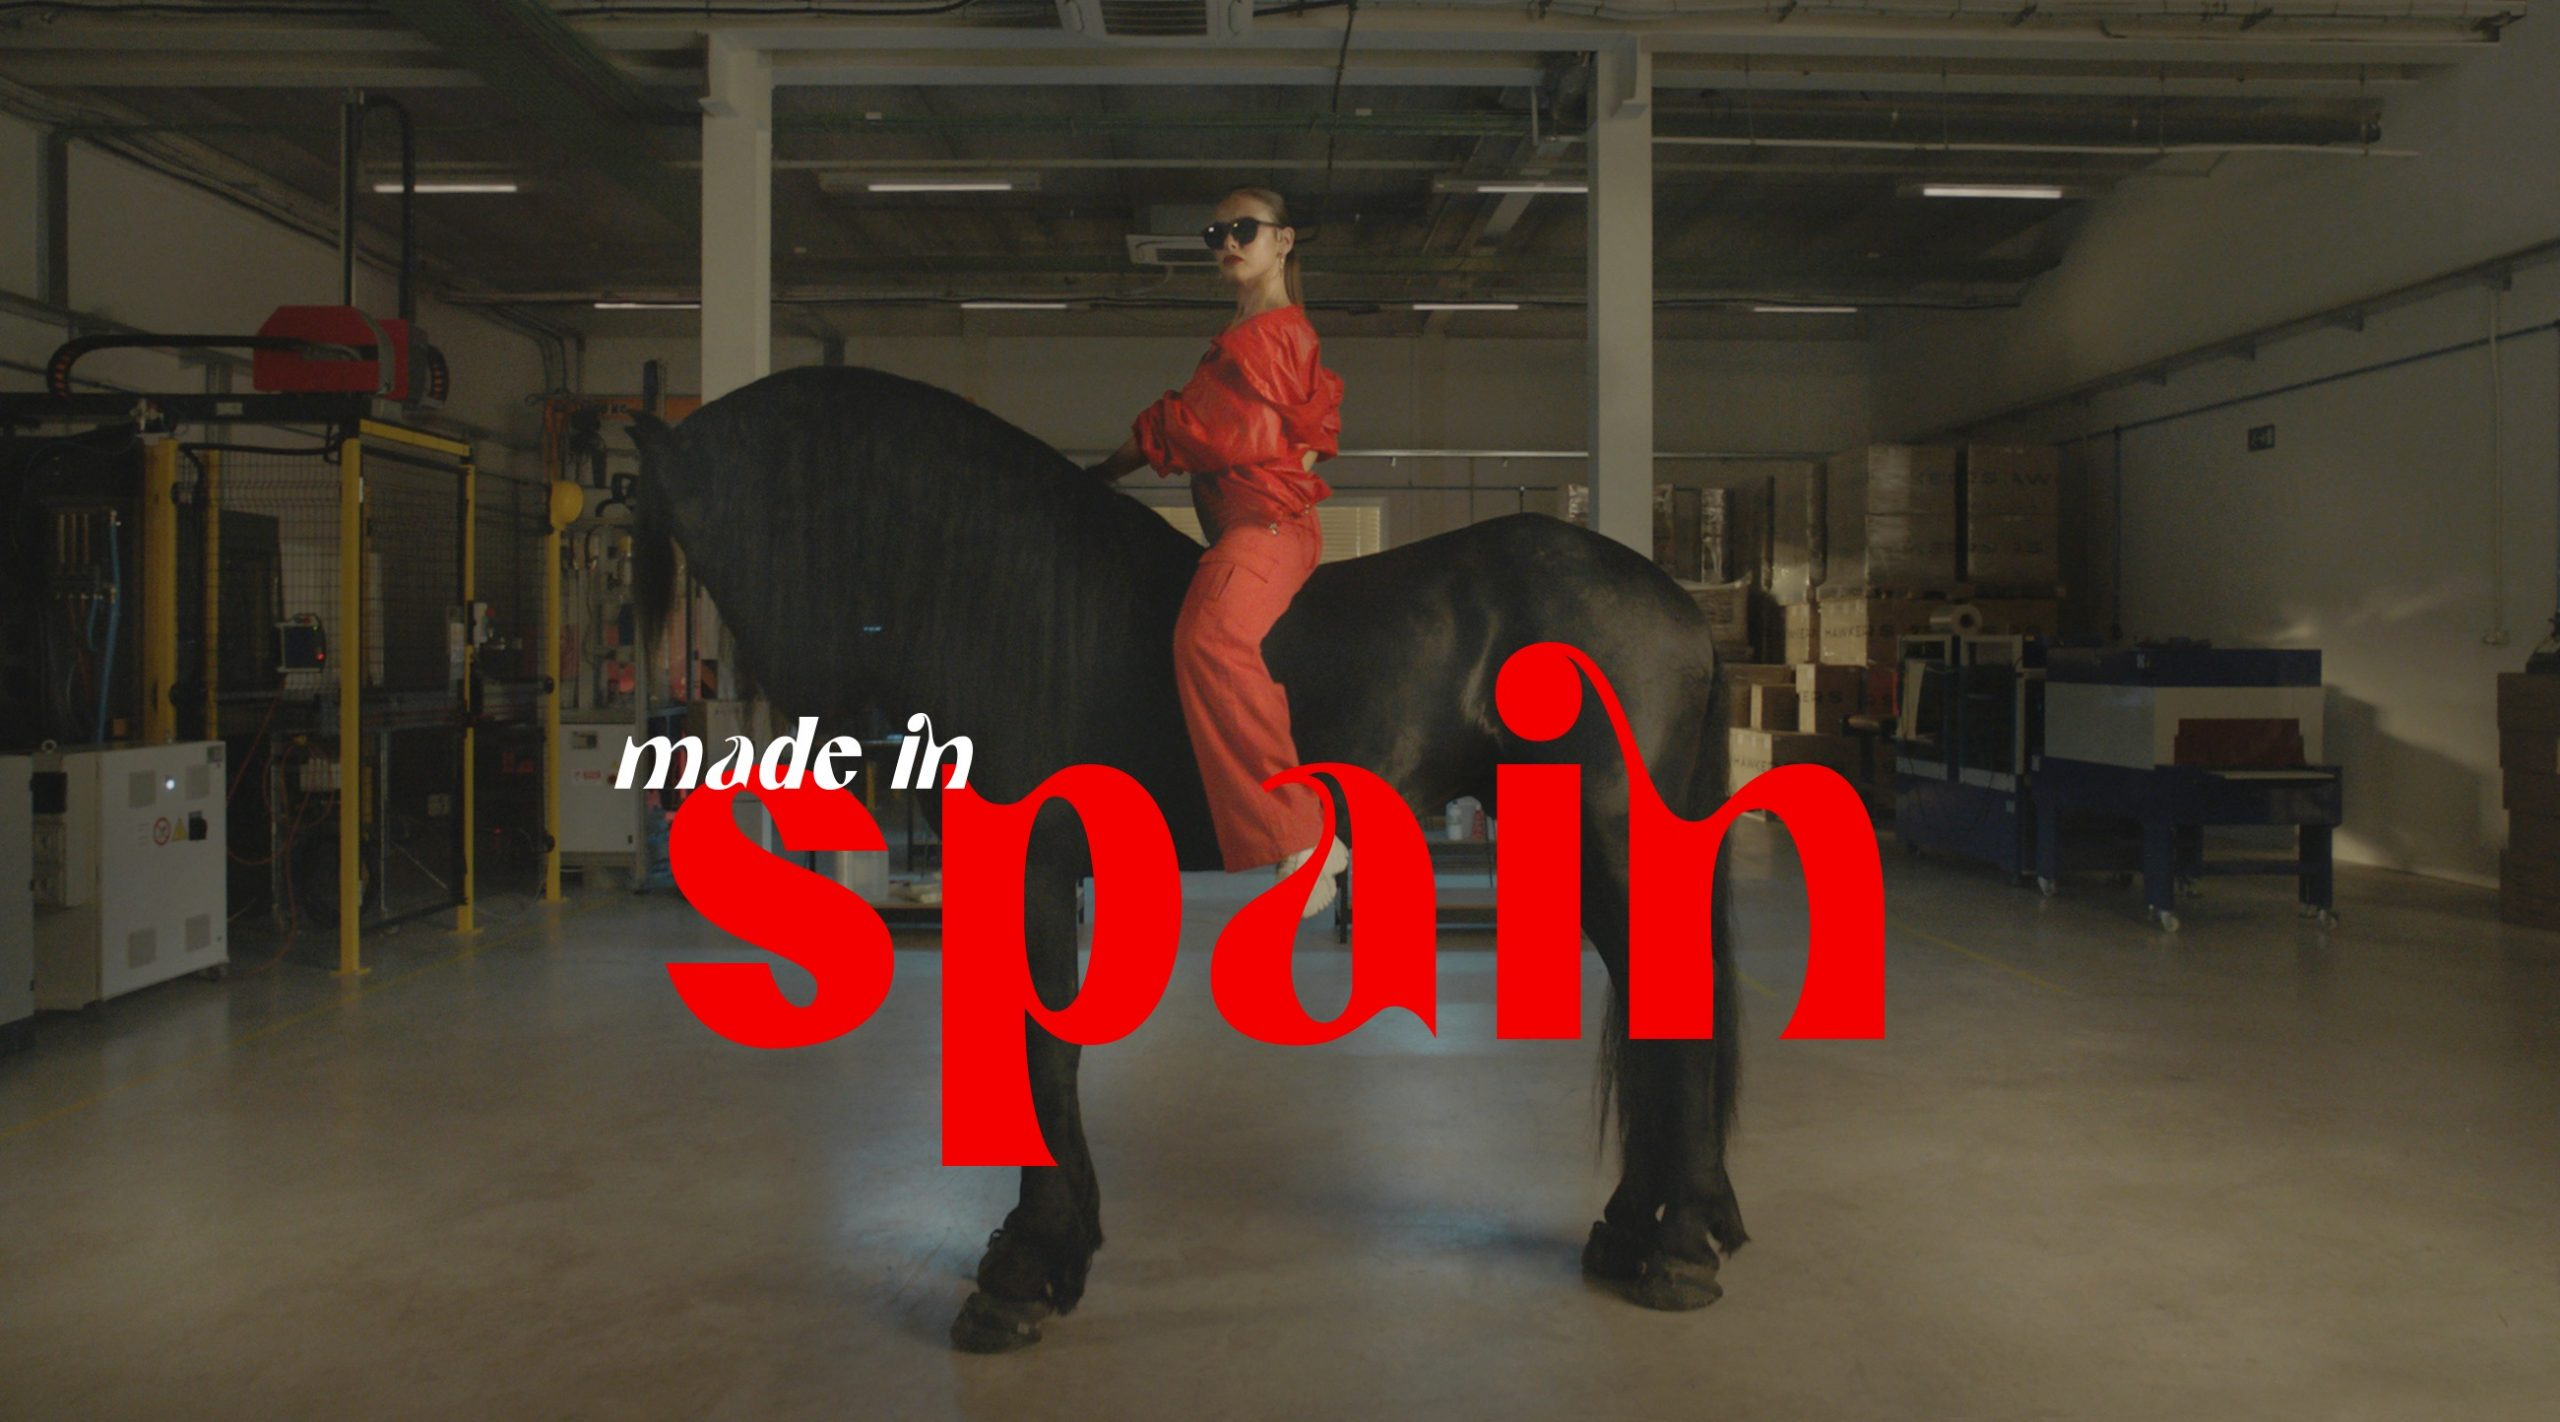 hawkers made in spain